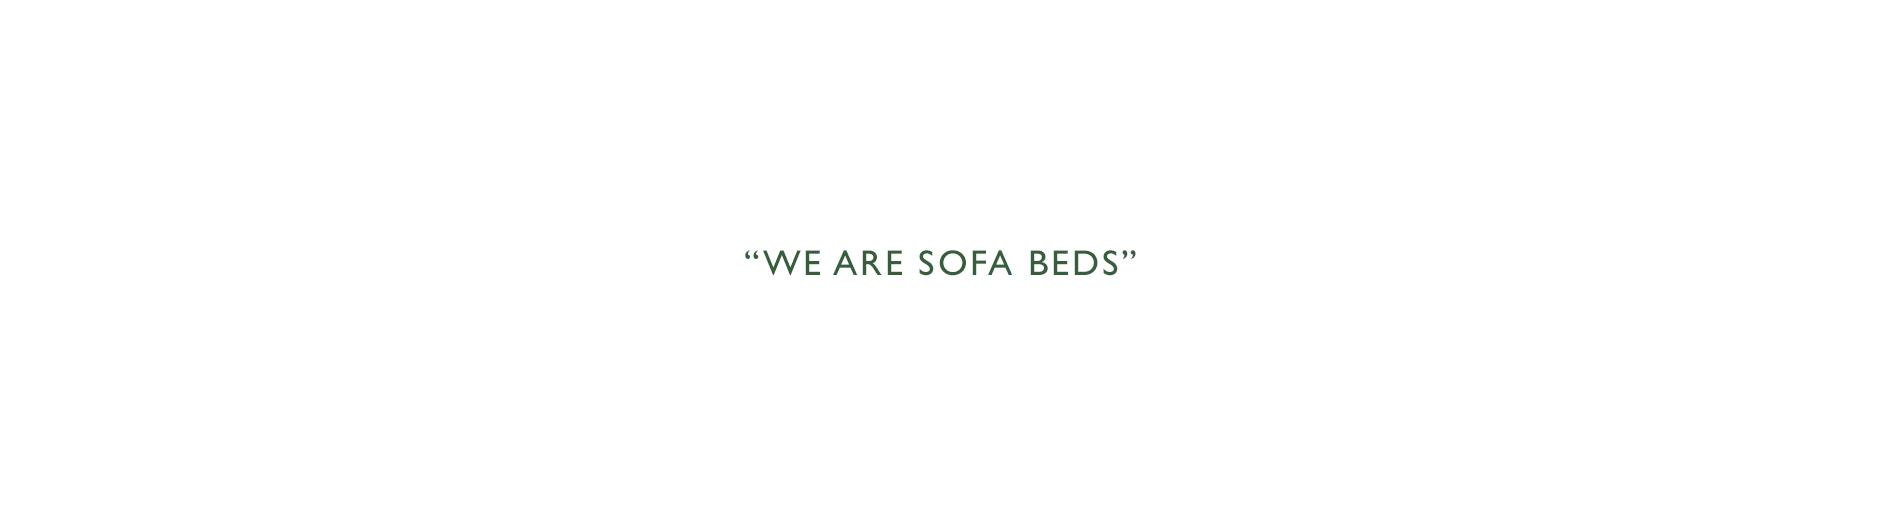 We-are-sofa-beds